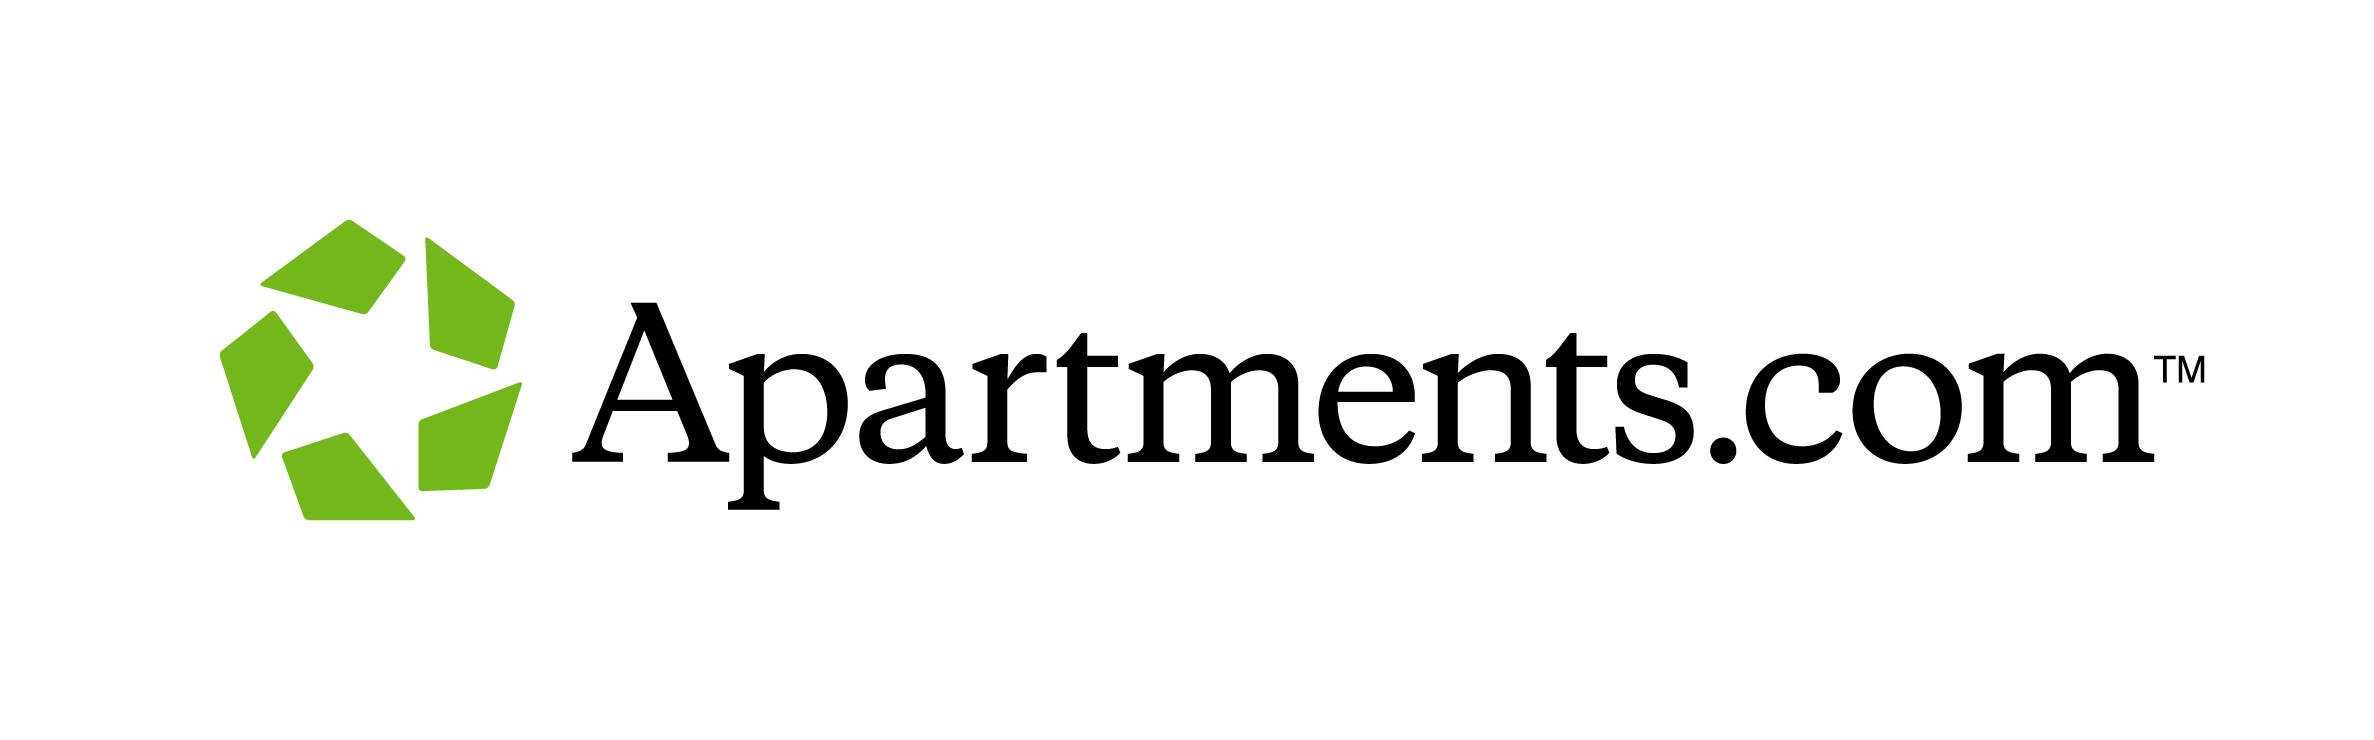 apartments.com - Findapartments, homes and condos for rent in your area.